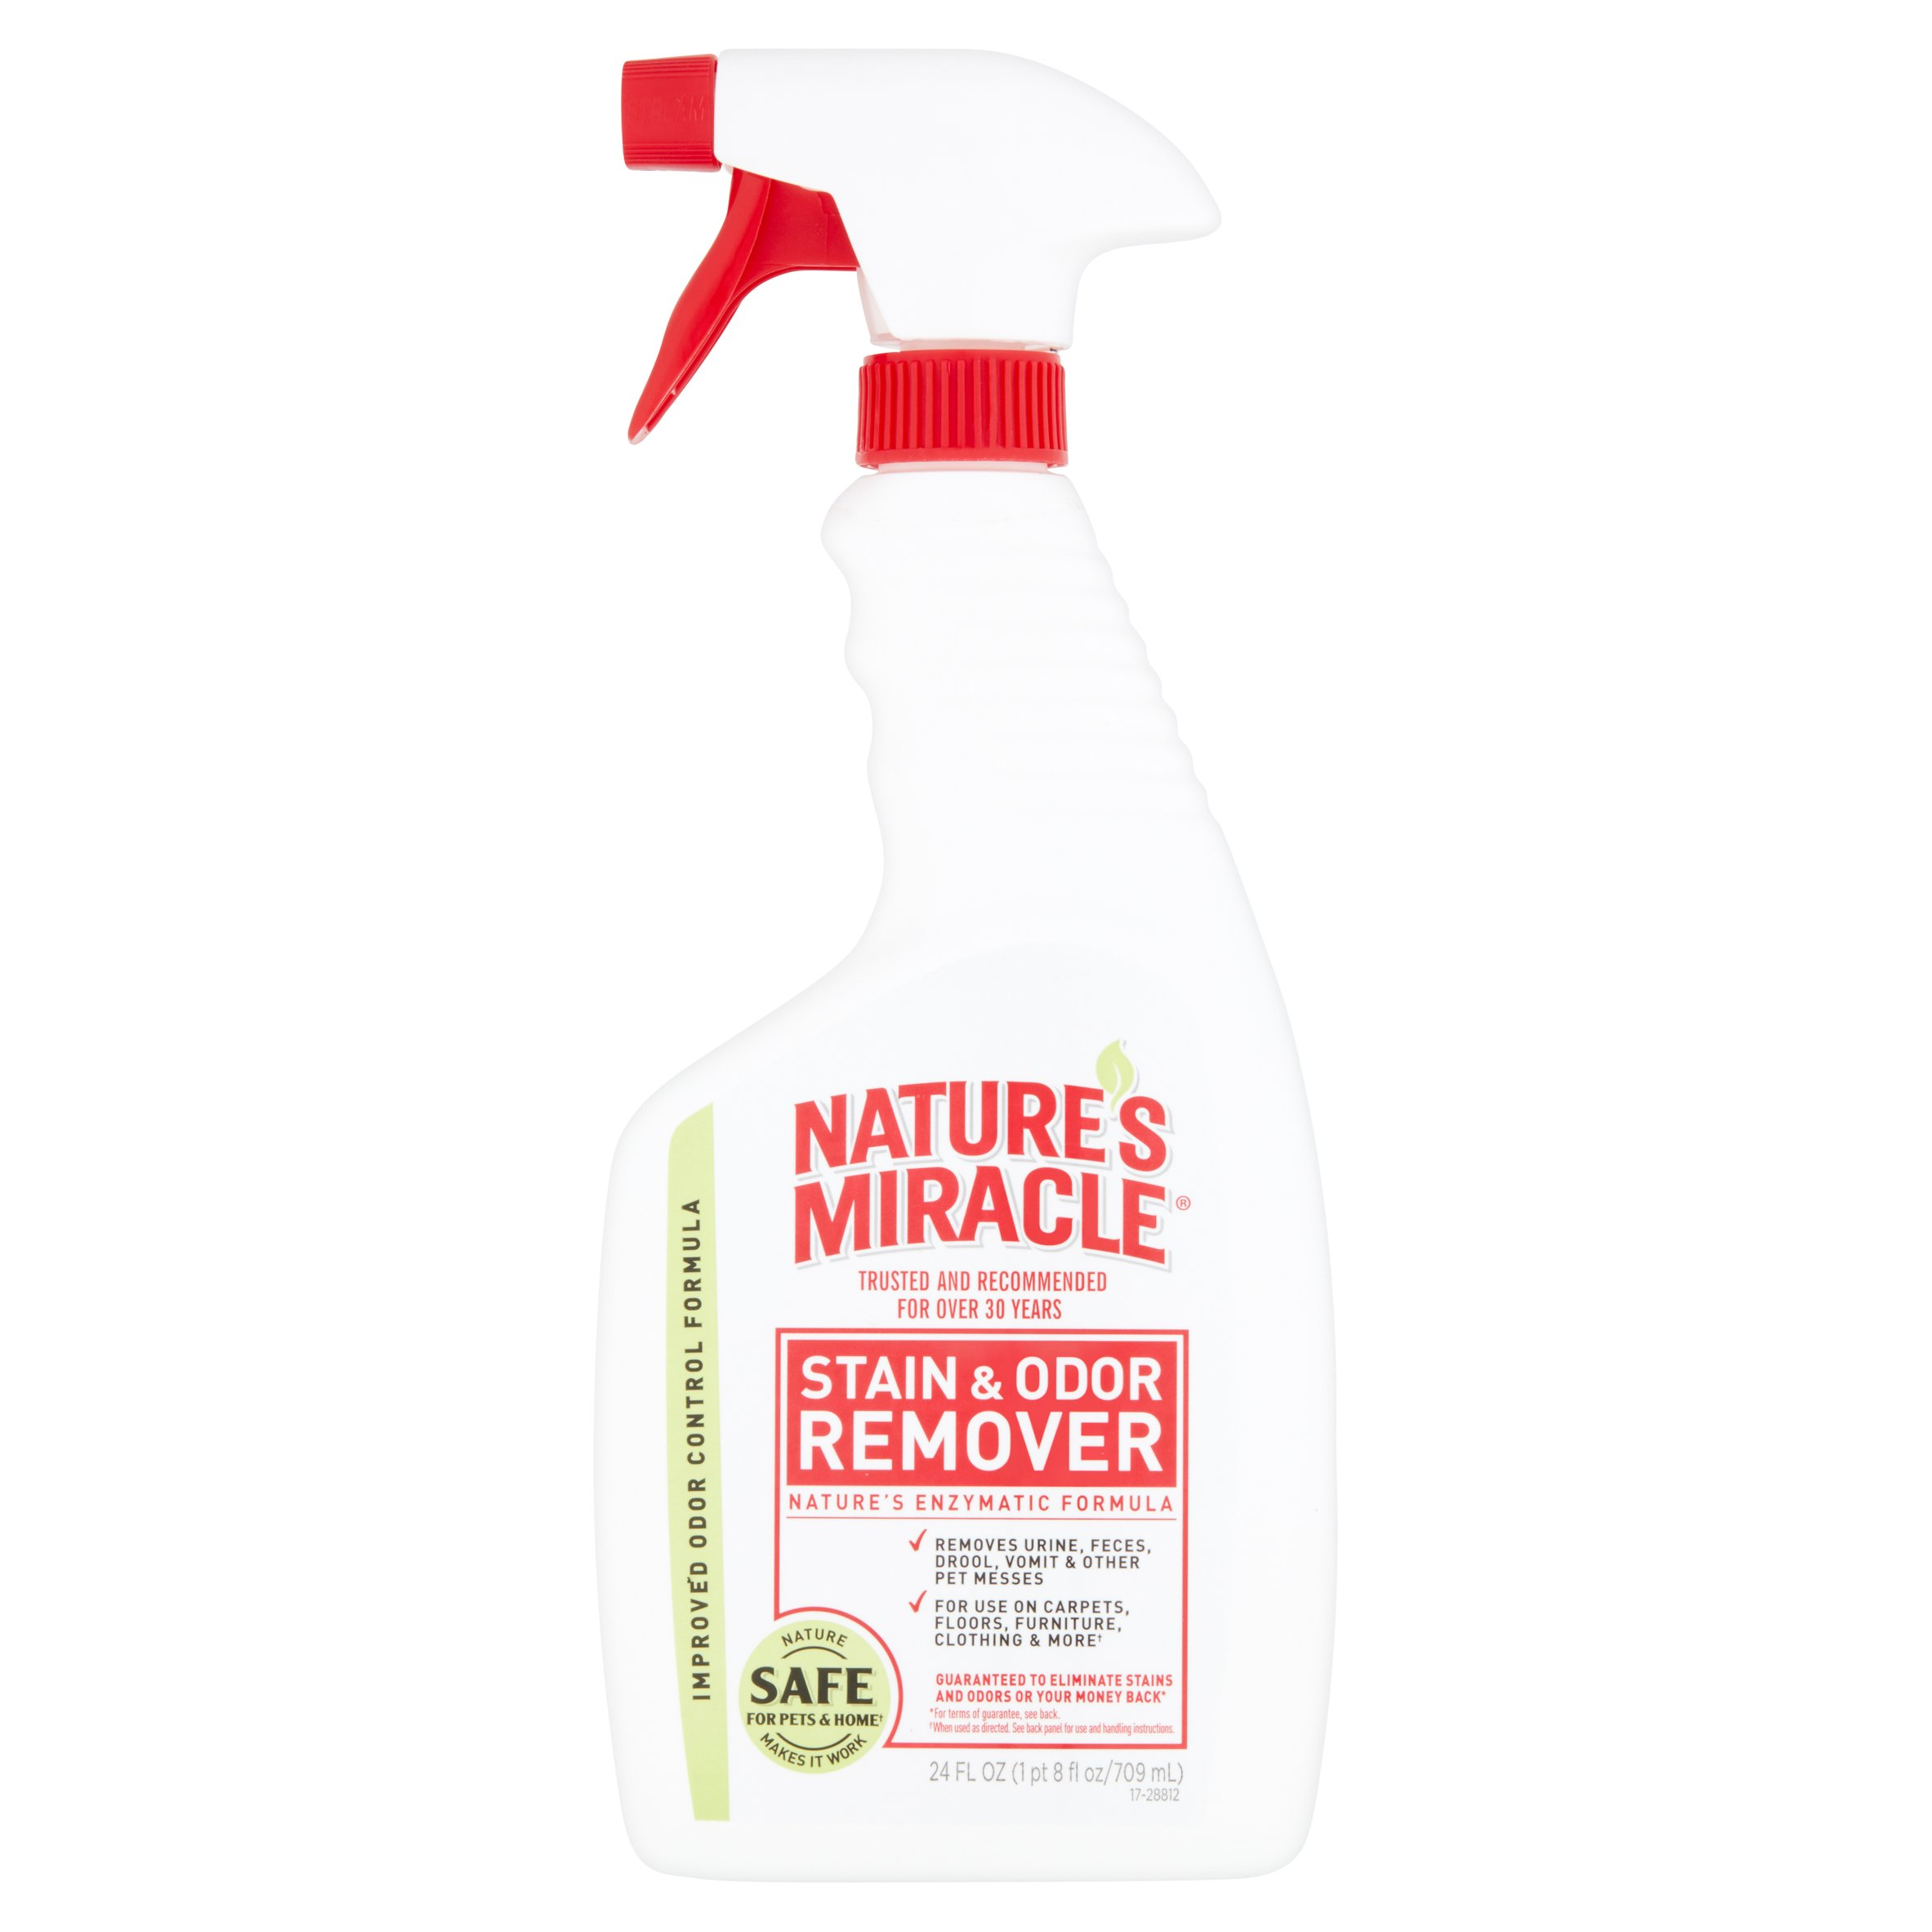 Nature's Miracle Stain & Odor Remover w/ Enzymatic Formula, 24 oz